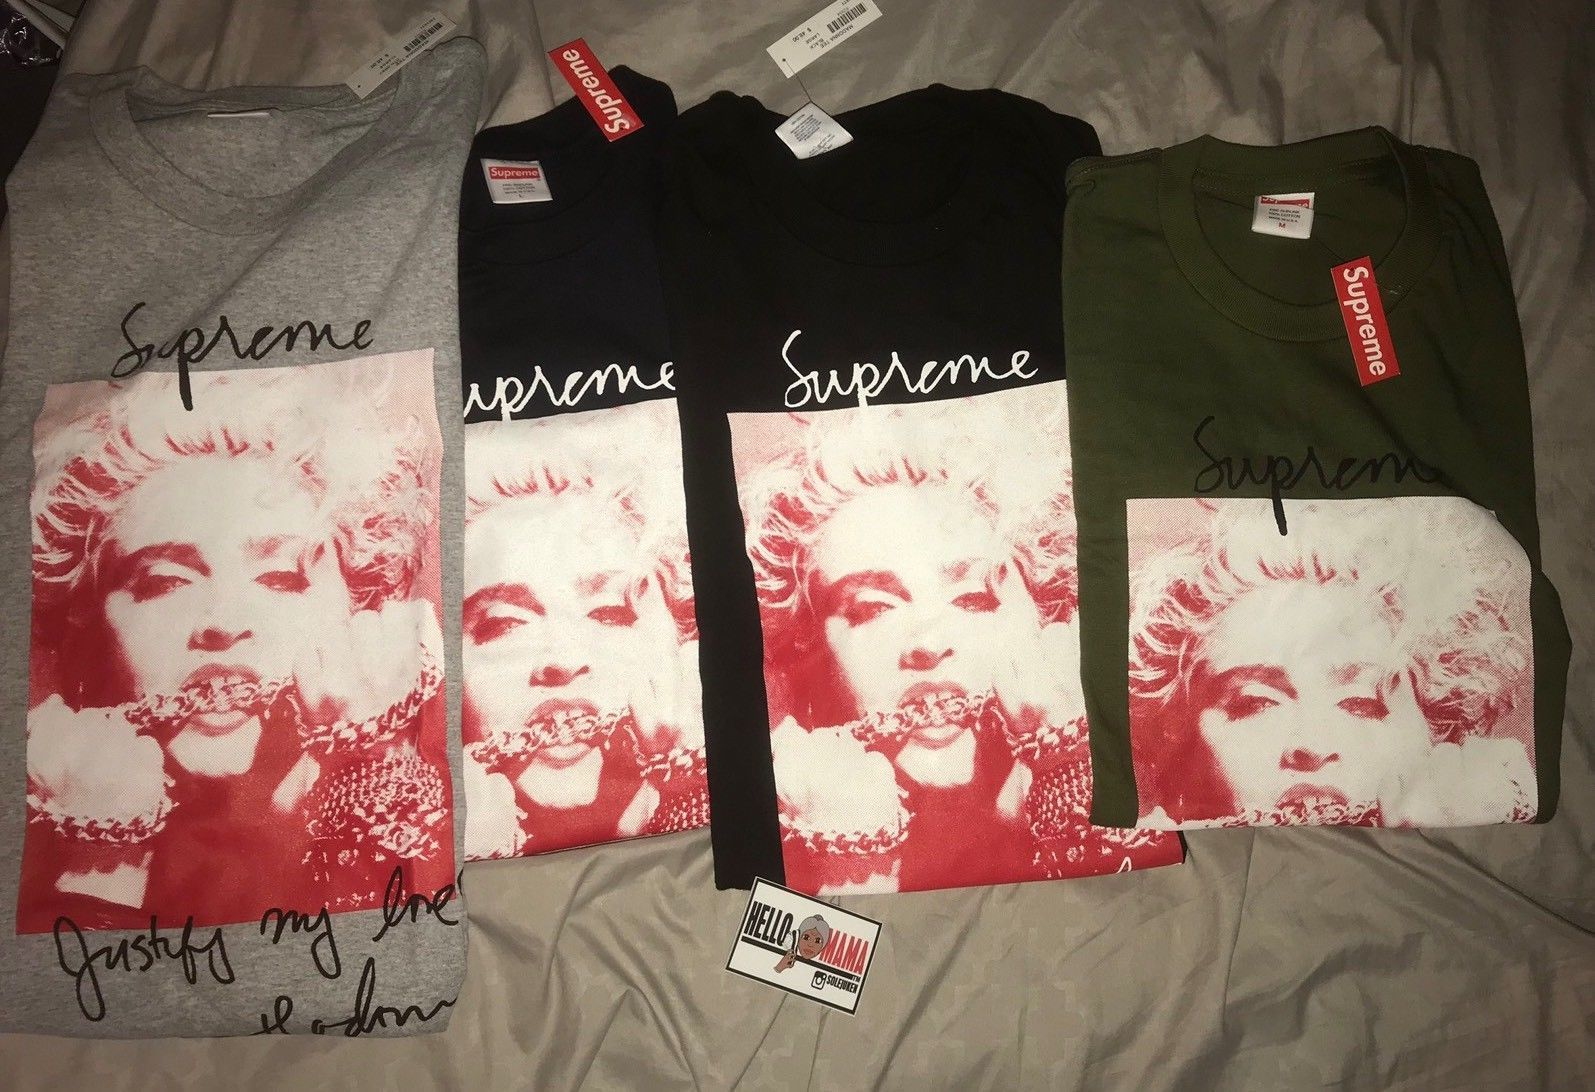 a4eba6131 Fashion Clothes. Supreme Madonna Tee Streetwear brand Supreme has unveiled  its Fall/Winter 2018 collection to coincide with Madonna's birthday.